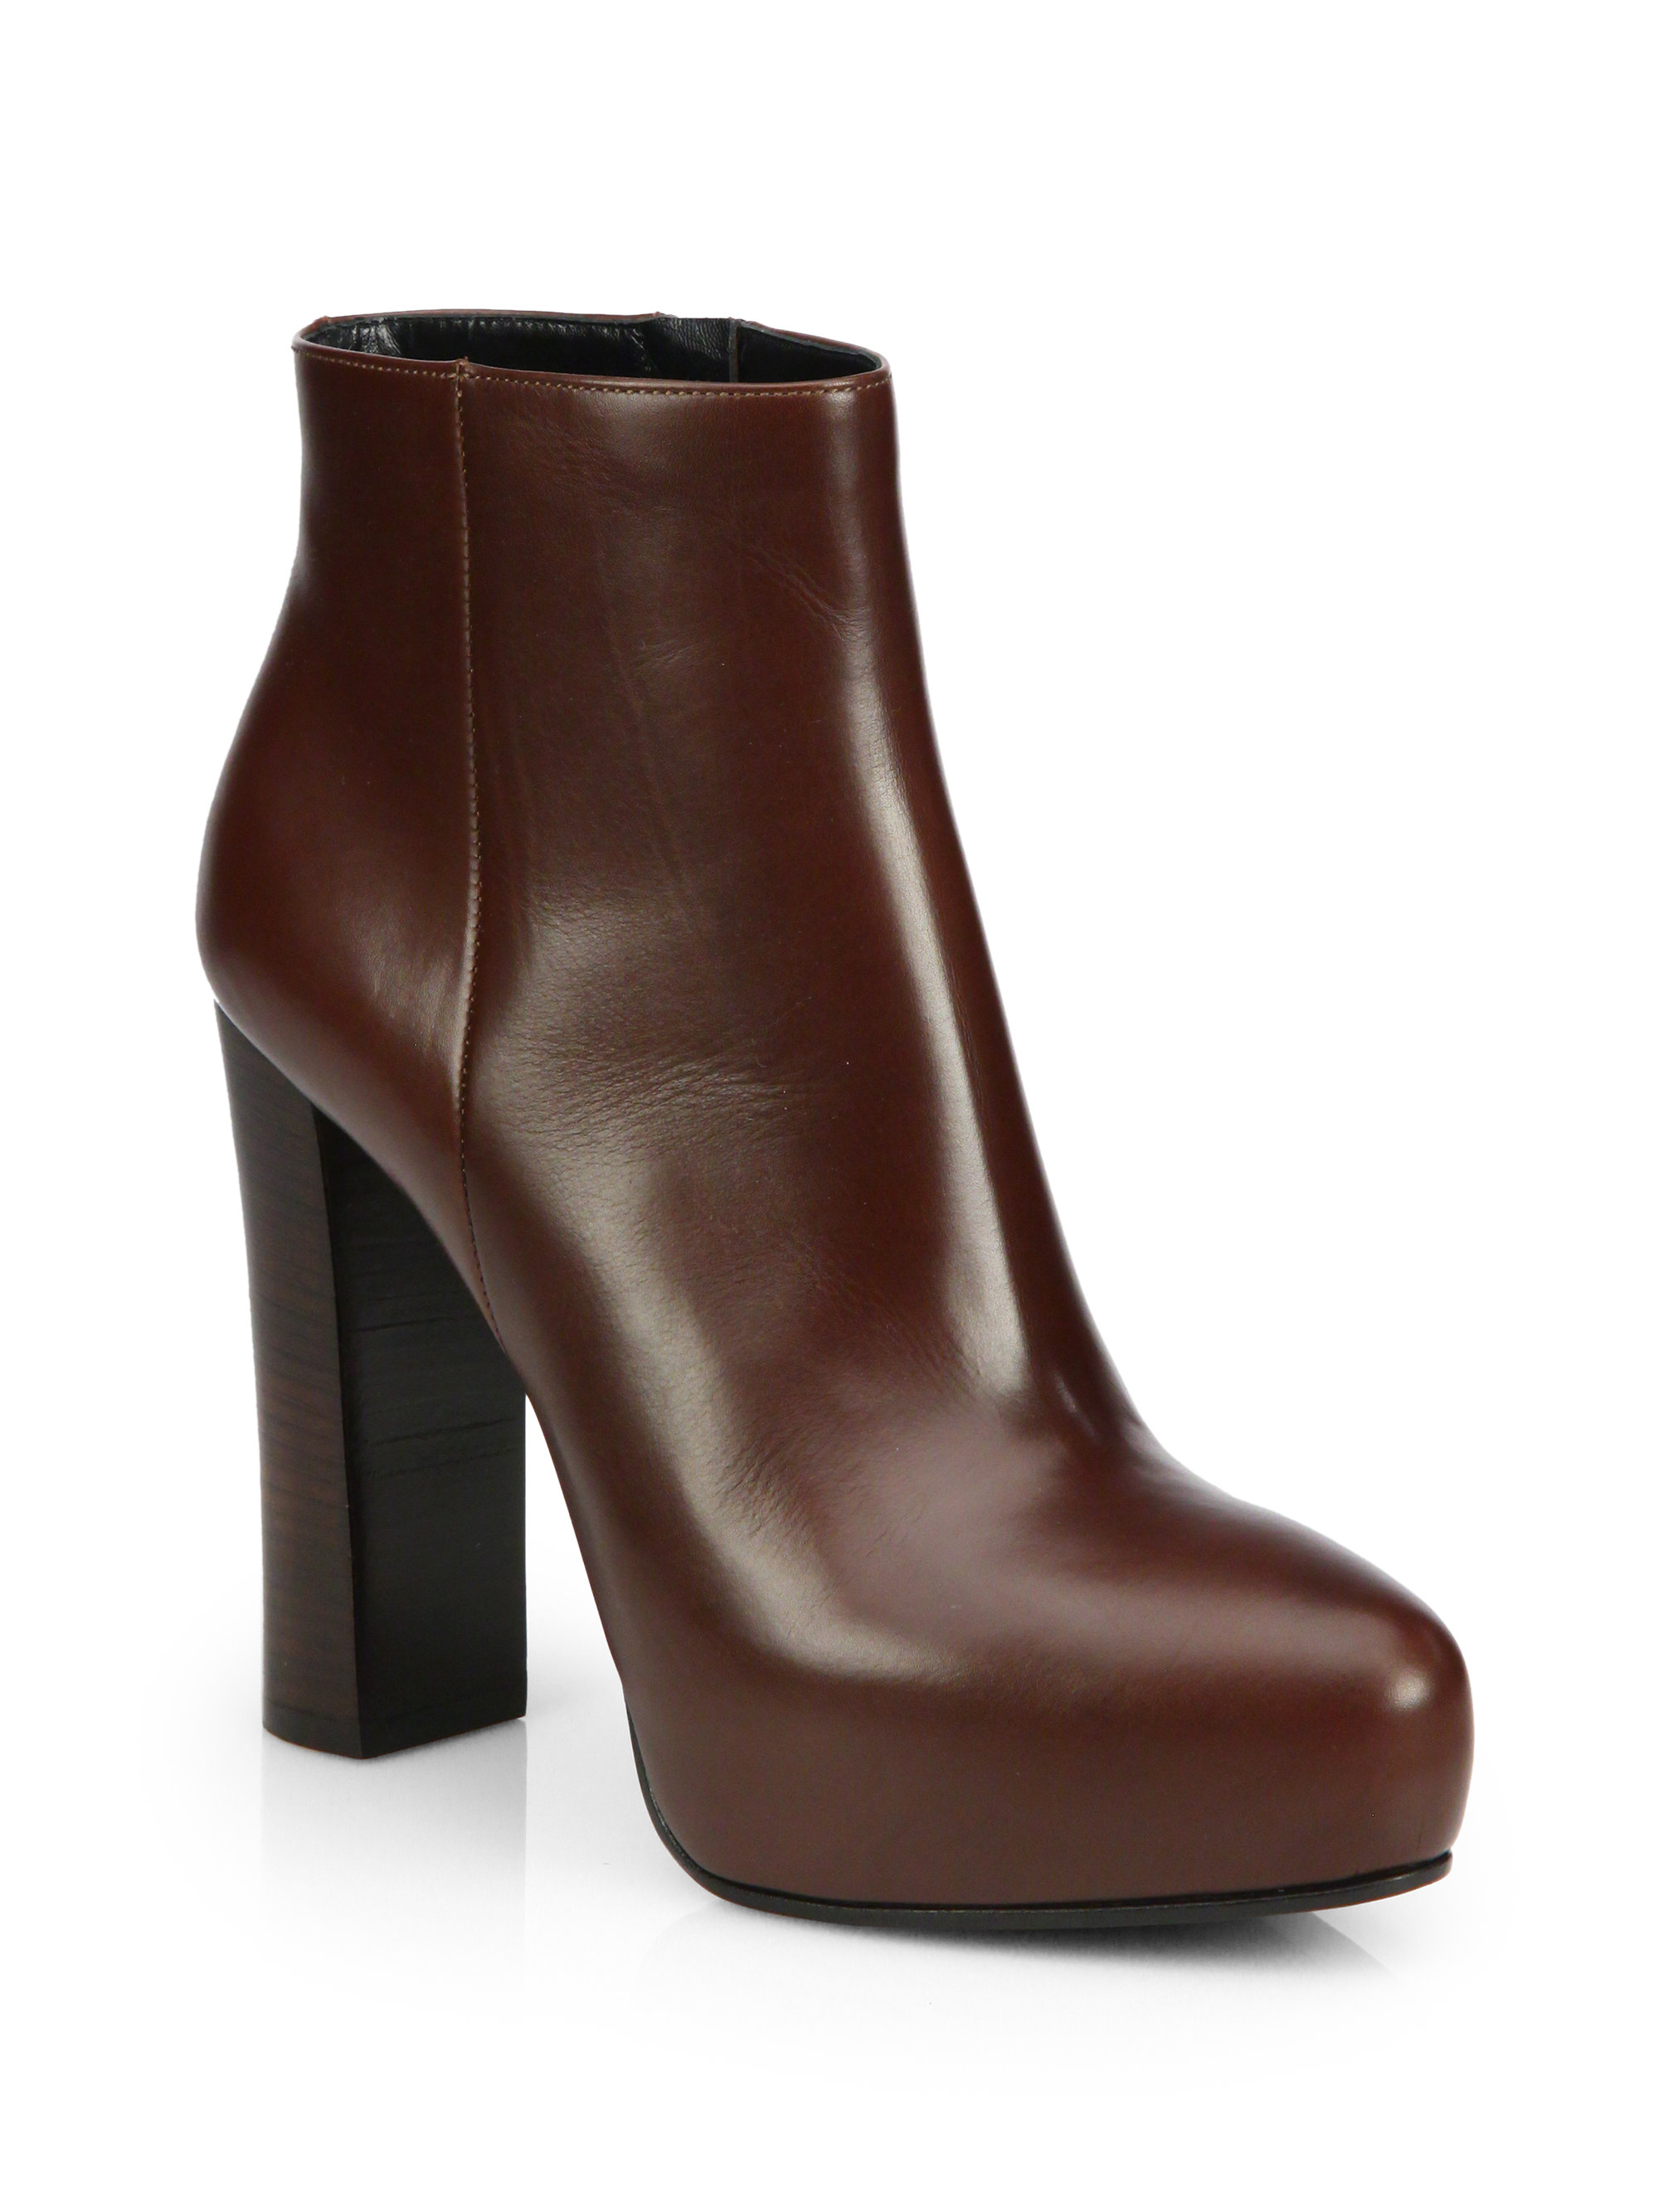 Prada Leather Ankle Boots in Brown | Lyst